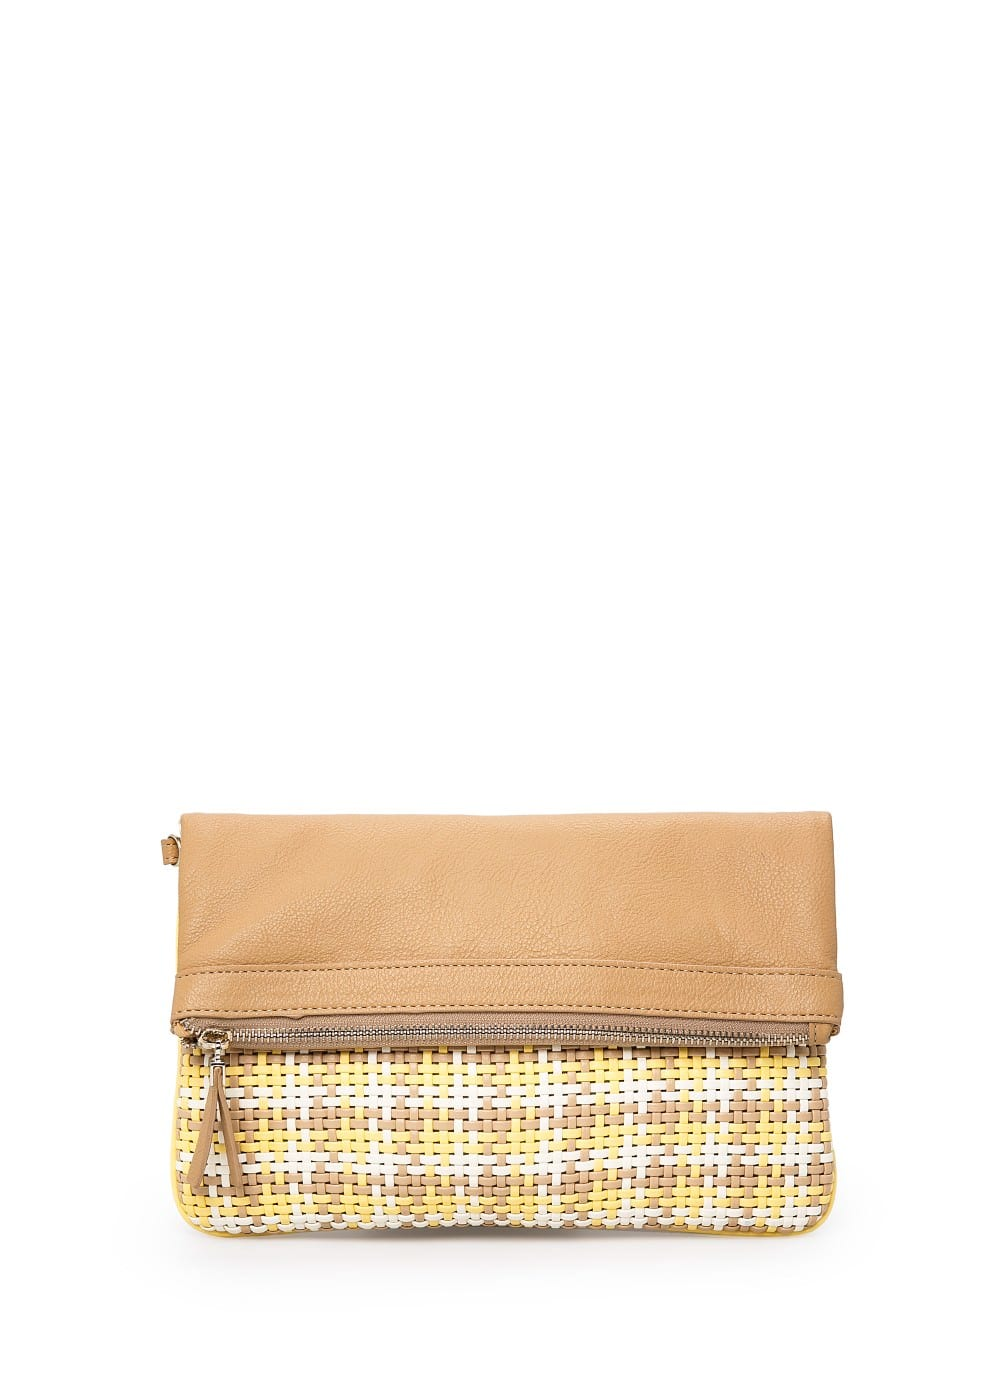 Interwoven folded clutch